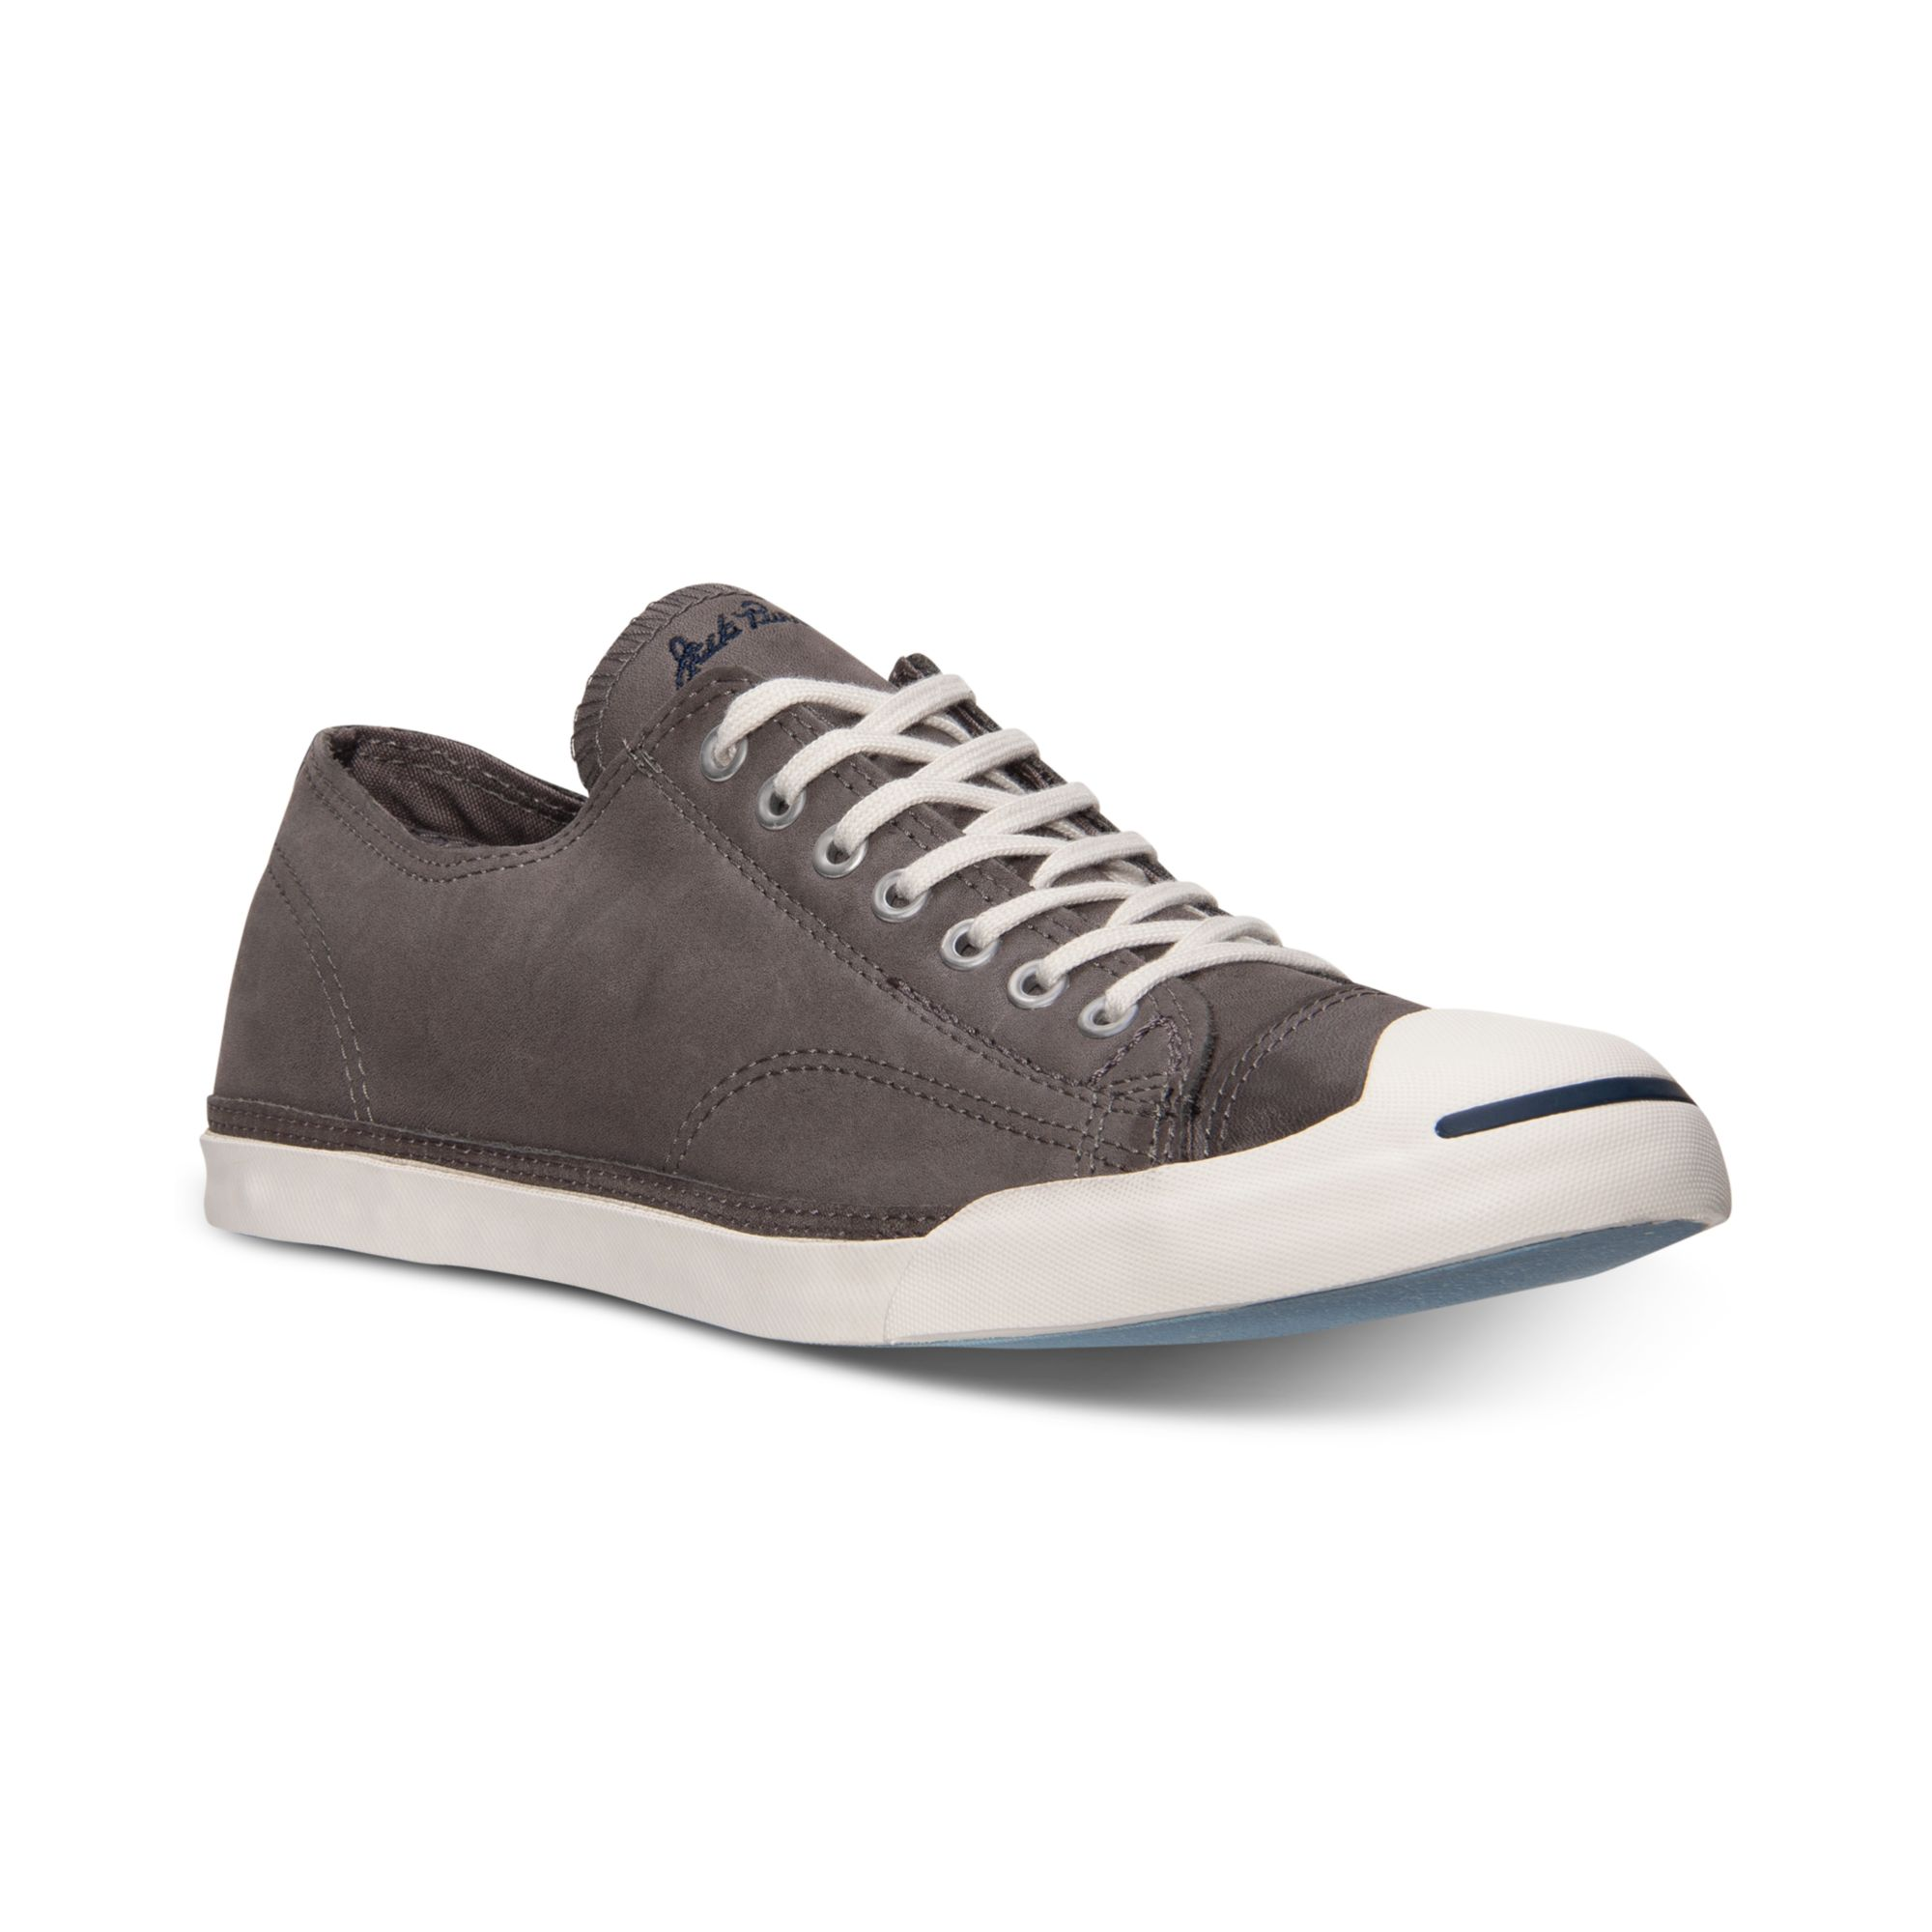 Converse mens jack purcell lp casual sneakers from finish - Graue converse ...